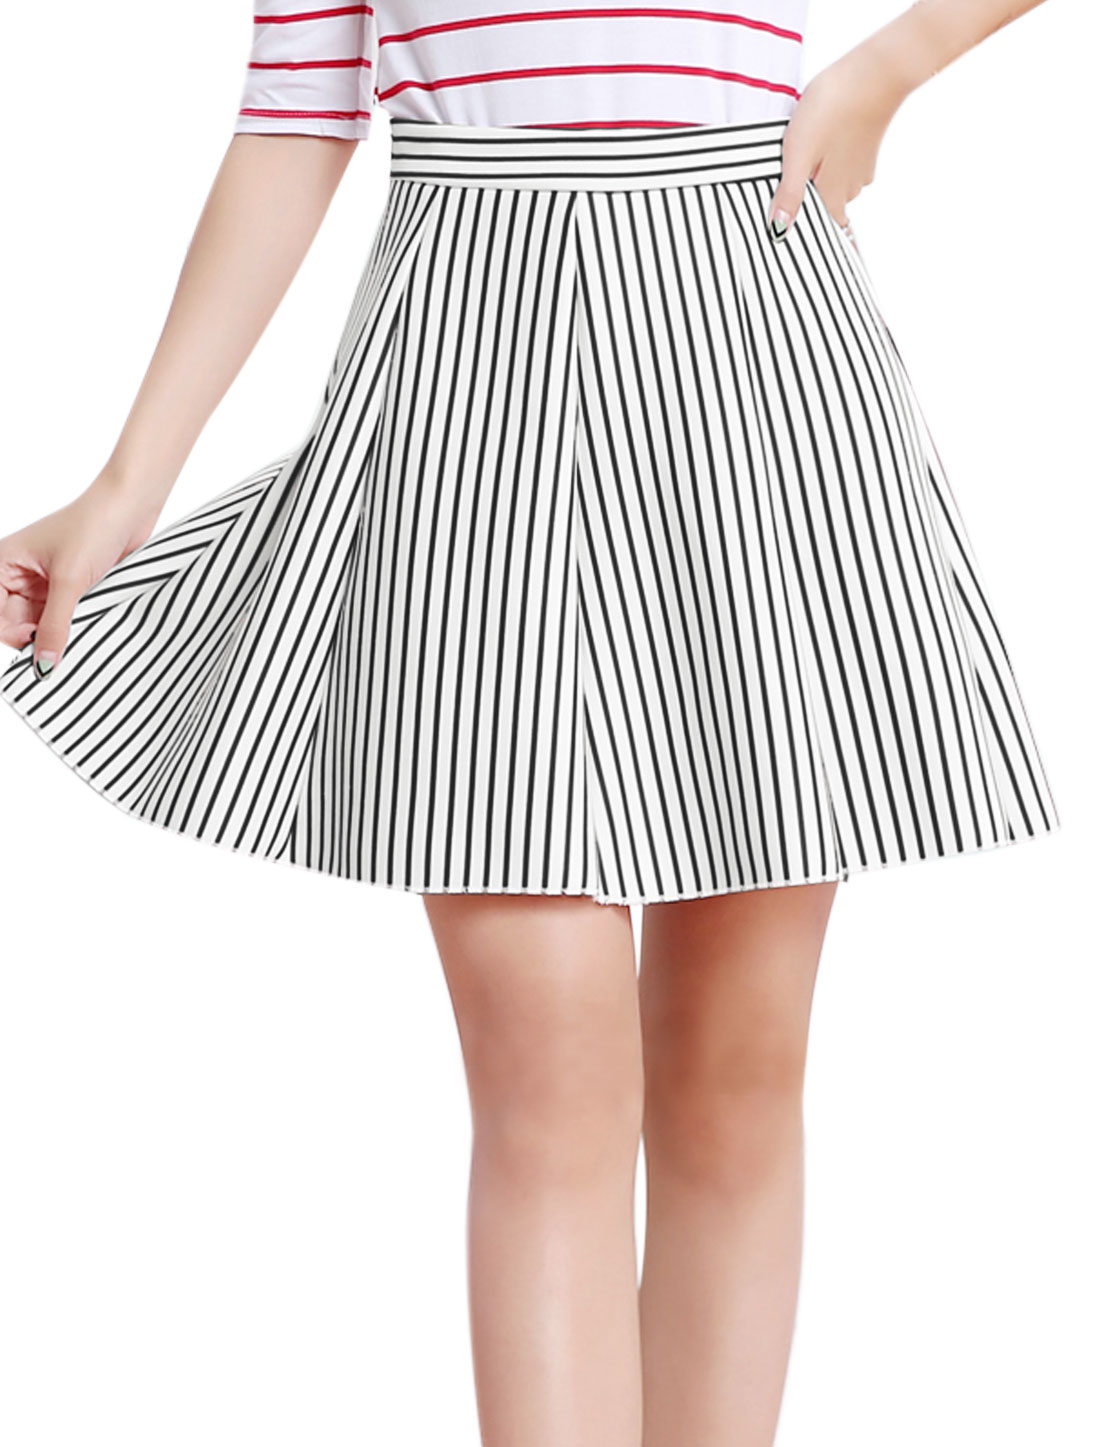 Women High Waist Pleated Stripes Print A Line Skort Black M